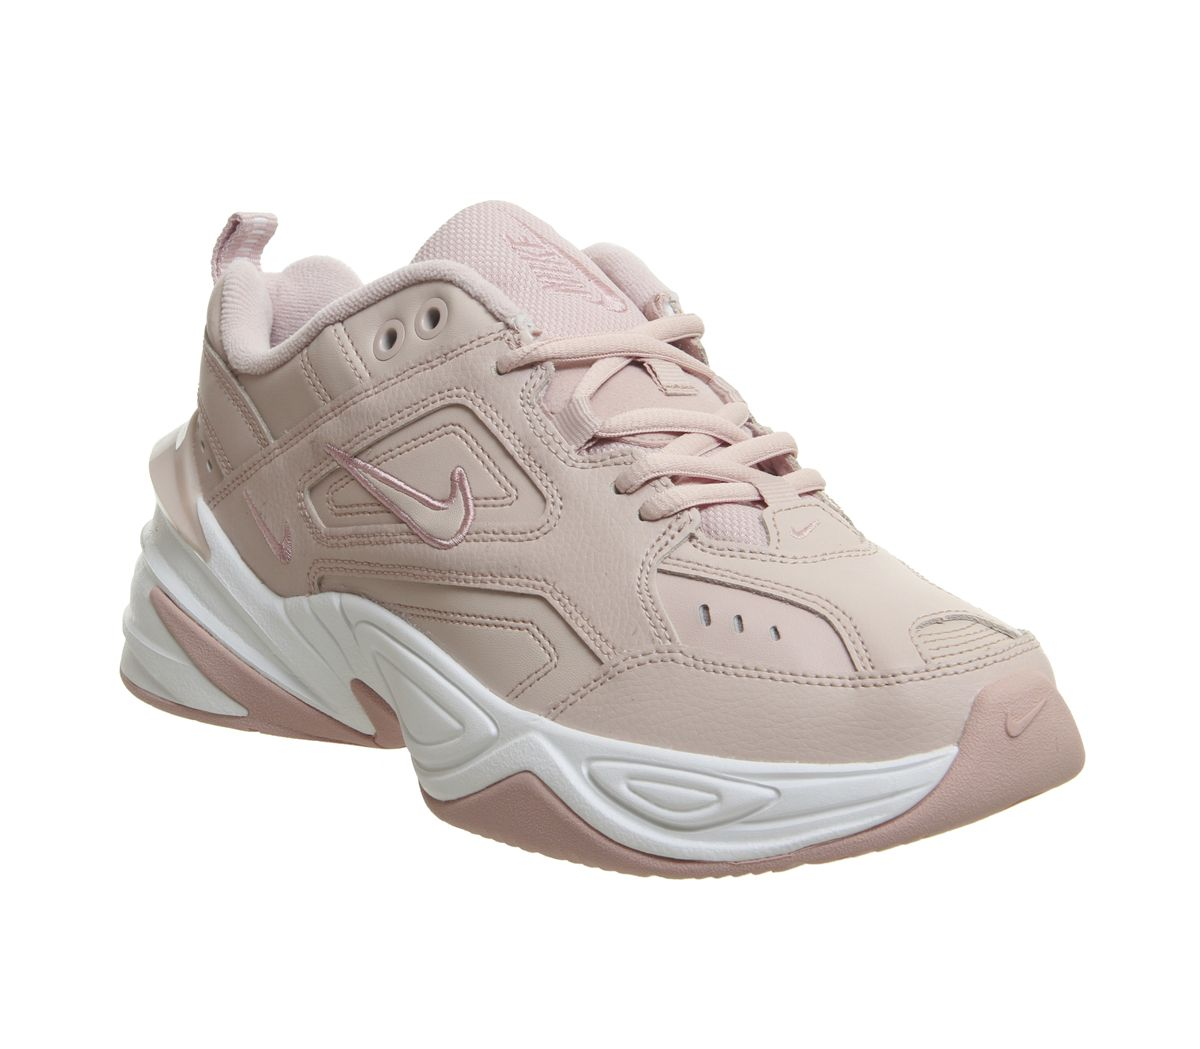 uk availability e964d cafbc Nike M2k Tekno Trainers Particle Beige Summit White - Hers trainers